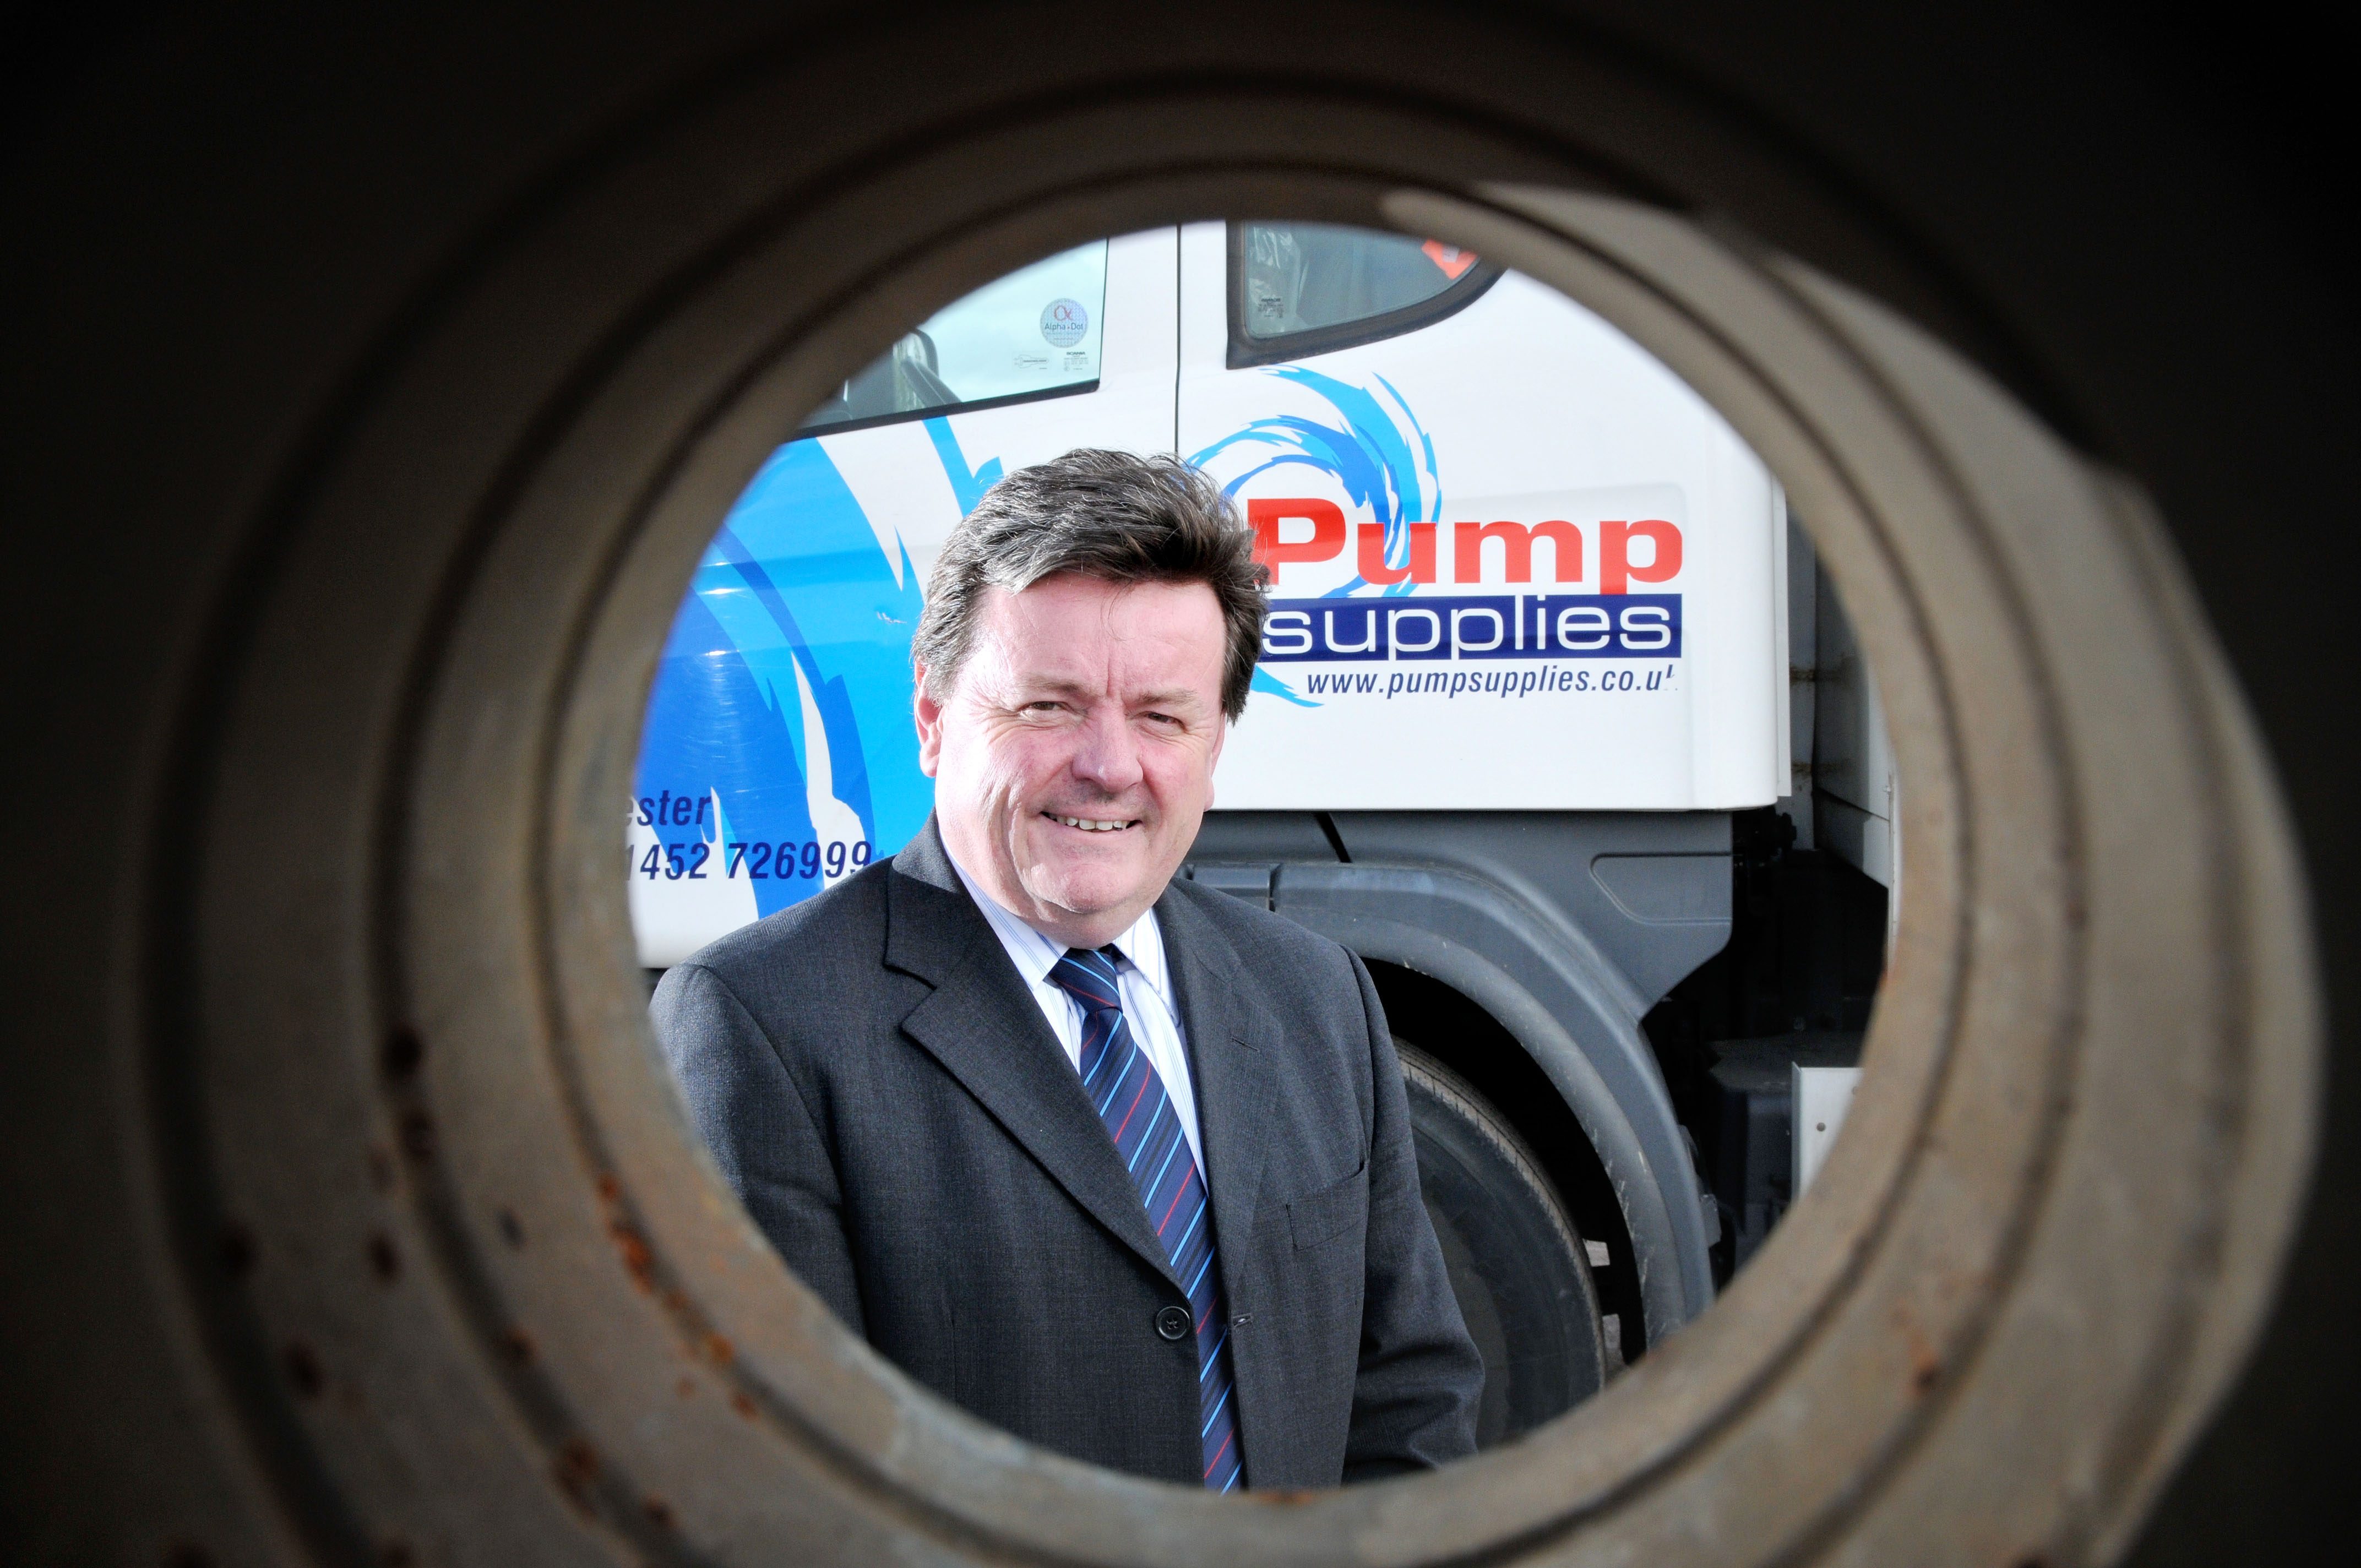 Lakers expands into uk with acquisitionof Pump Supplies Ltd